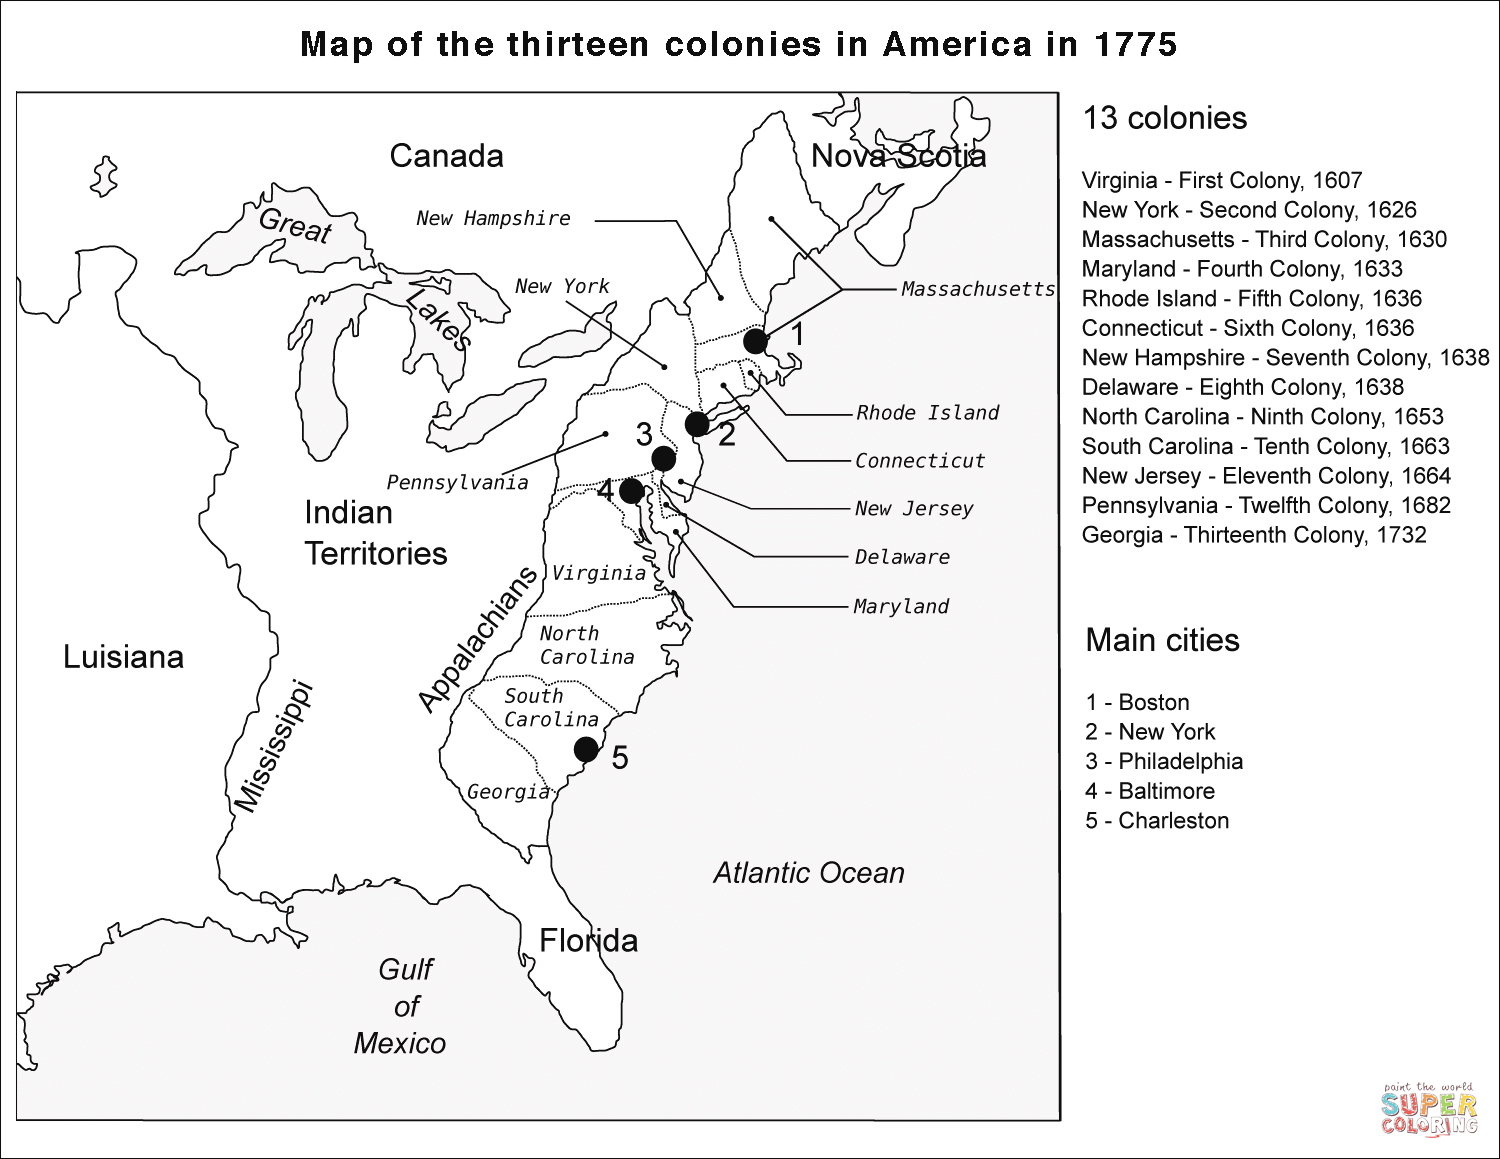 13 Colonies Map Coloring Page | Free Printable Coloring Pages - 13 Colonies Blank Map Printable